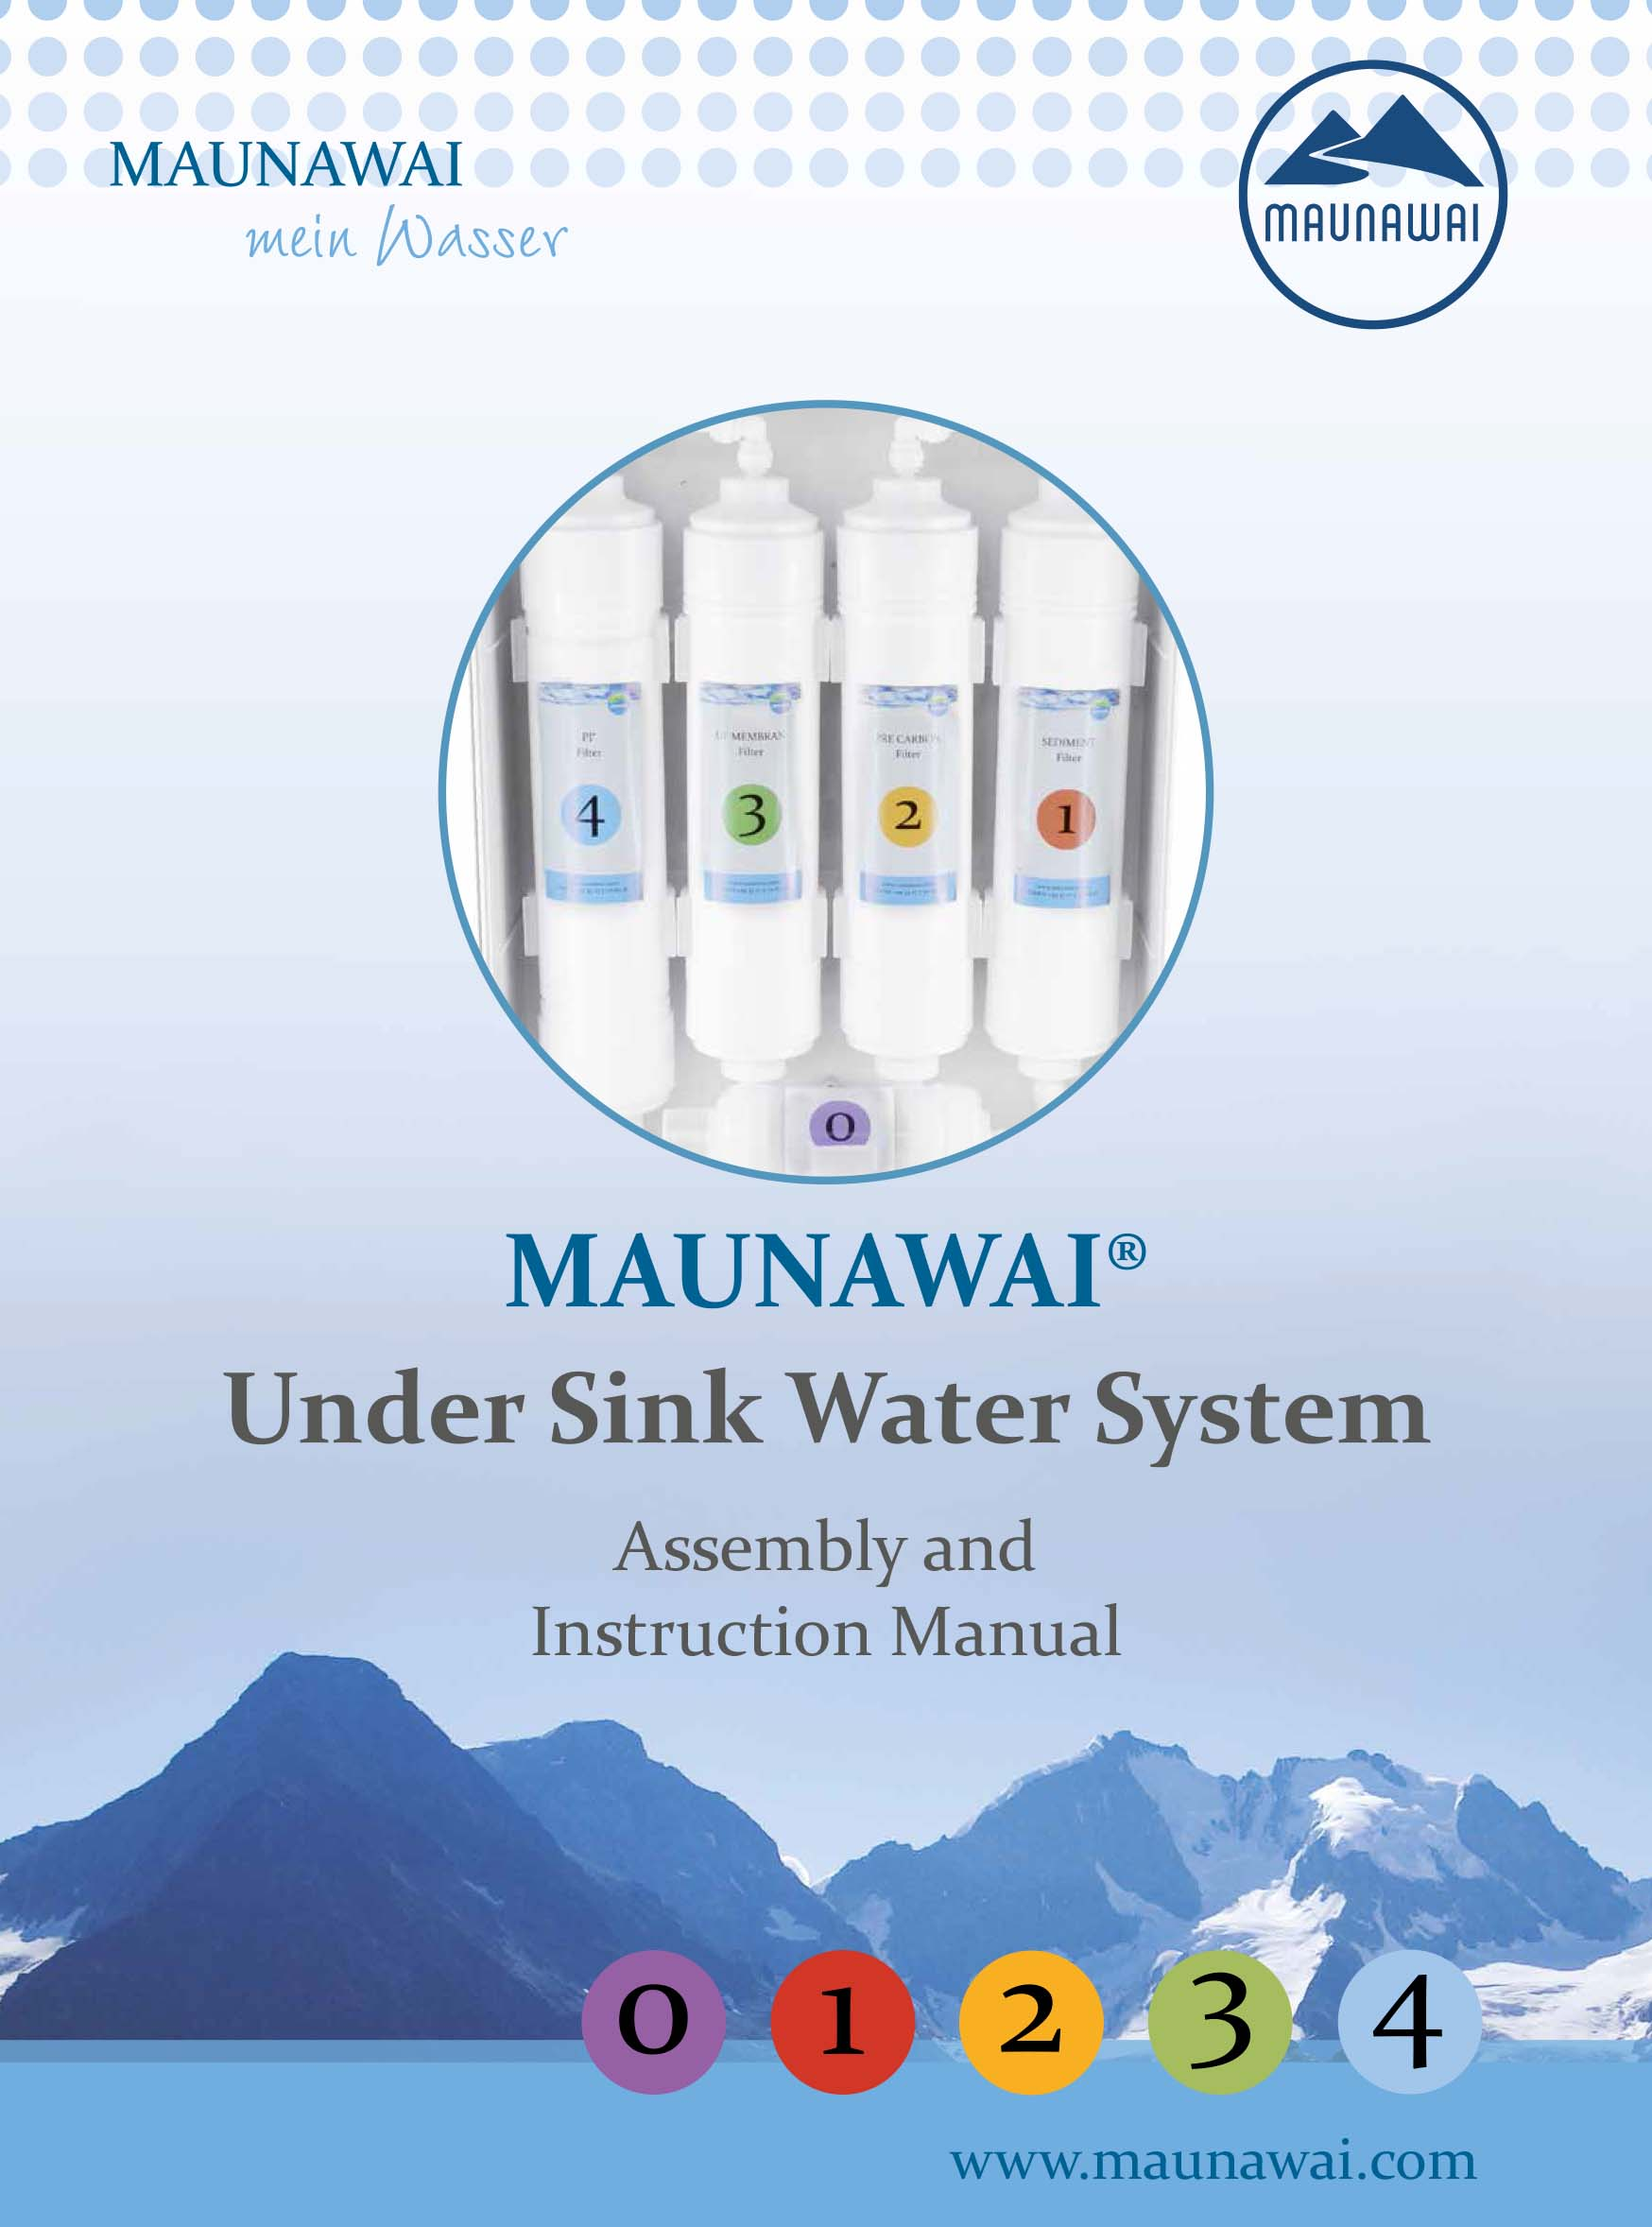 MAUNAWAI-under-sink-assembly-instructions-1.jpg